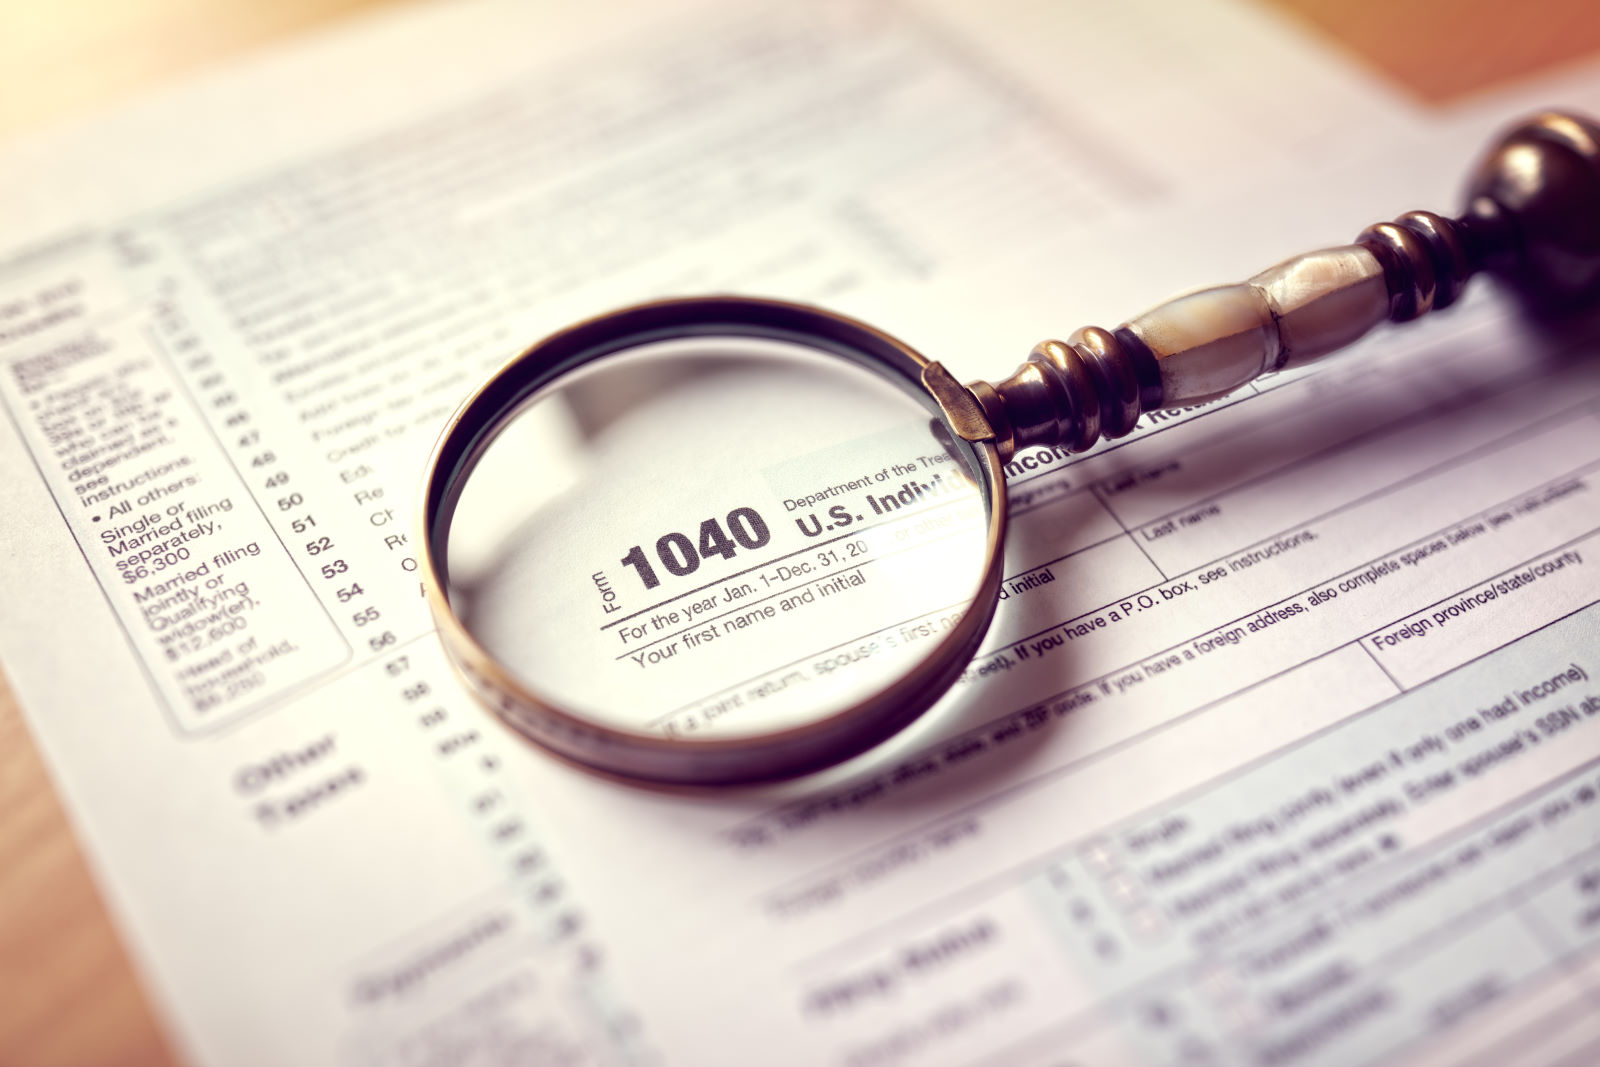 Income tax 1040 us individual tax return form and magnifying glass